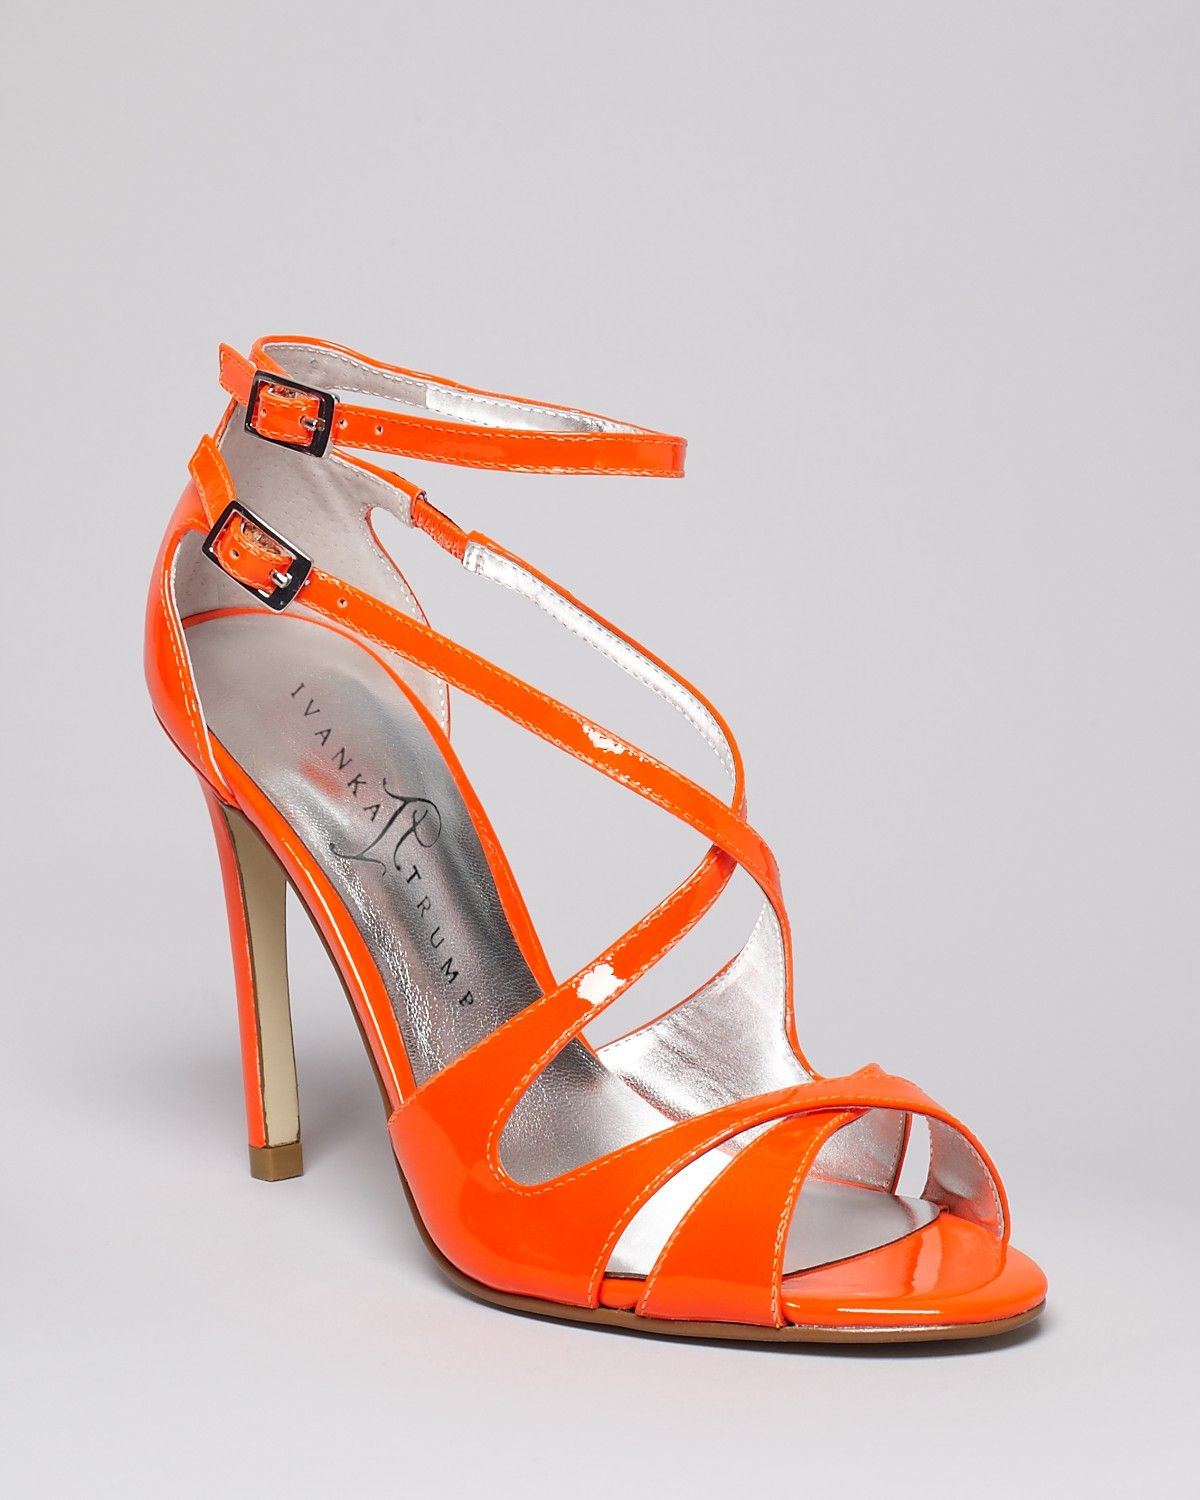 IVANKA TRUMP Strappy Sandals - Helice High Heel | Bloomingdales